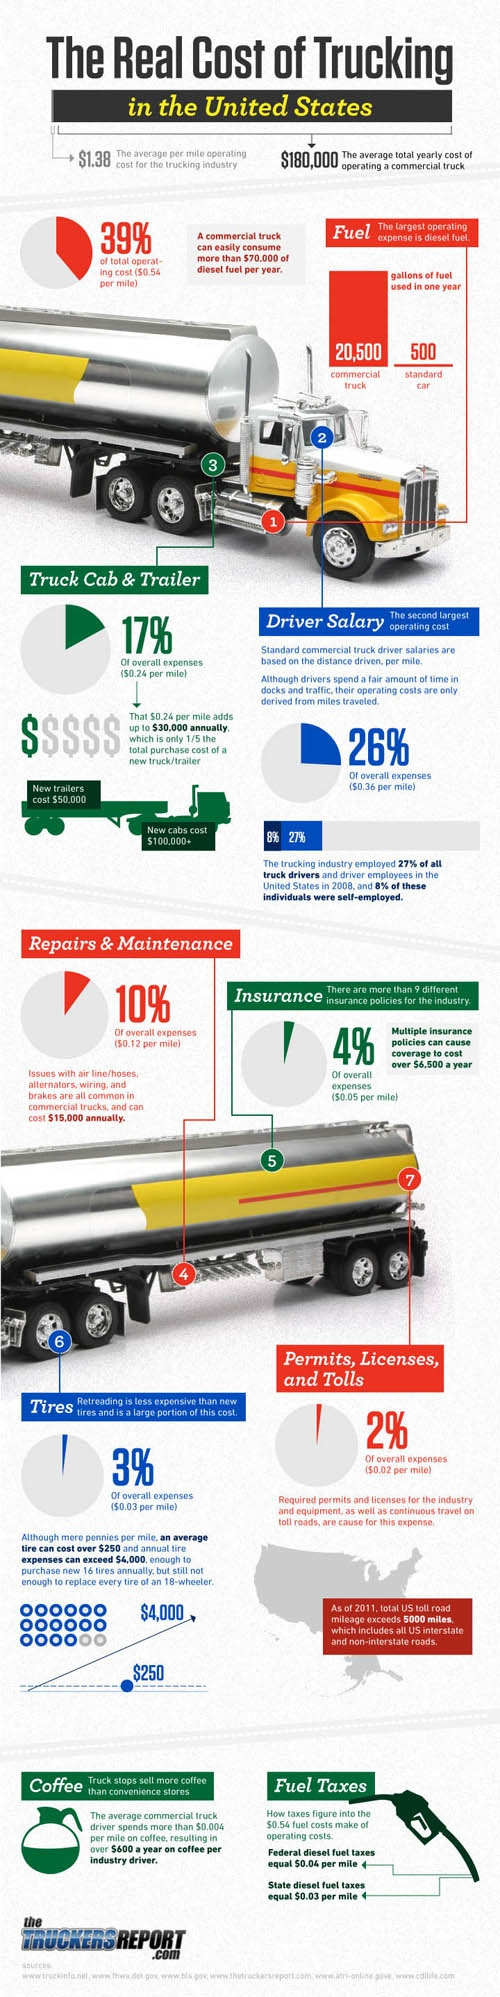 The Real Cost of Trucking – Infographic on http://www.bestinfographic.co.uk